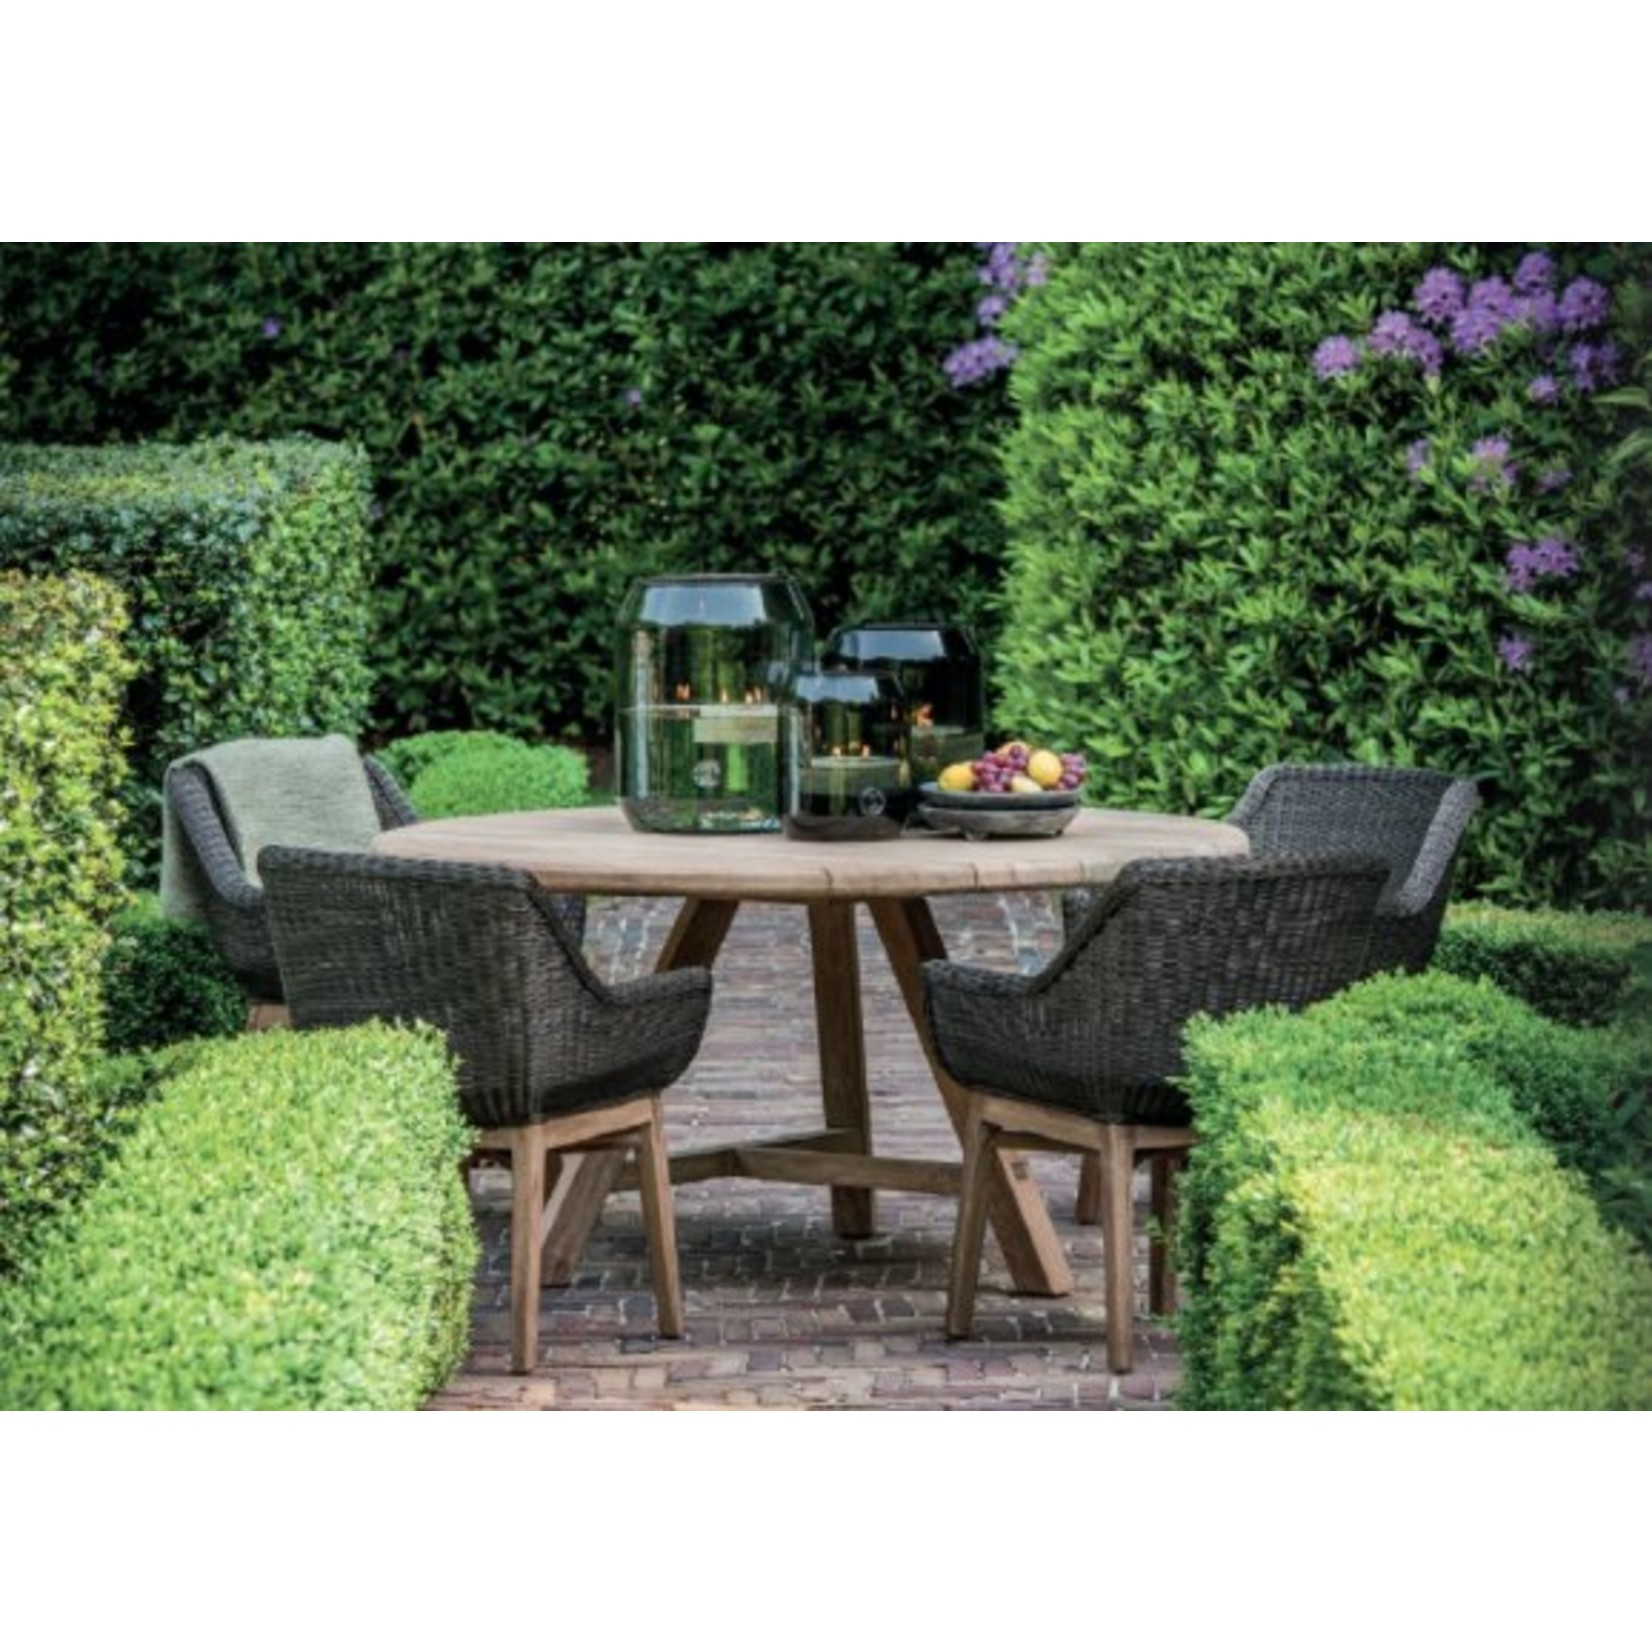 Gommaire Armchair Jacky   Teak Natural Gray / PE Wicker Charcoal